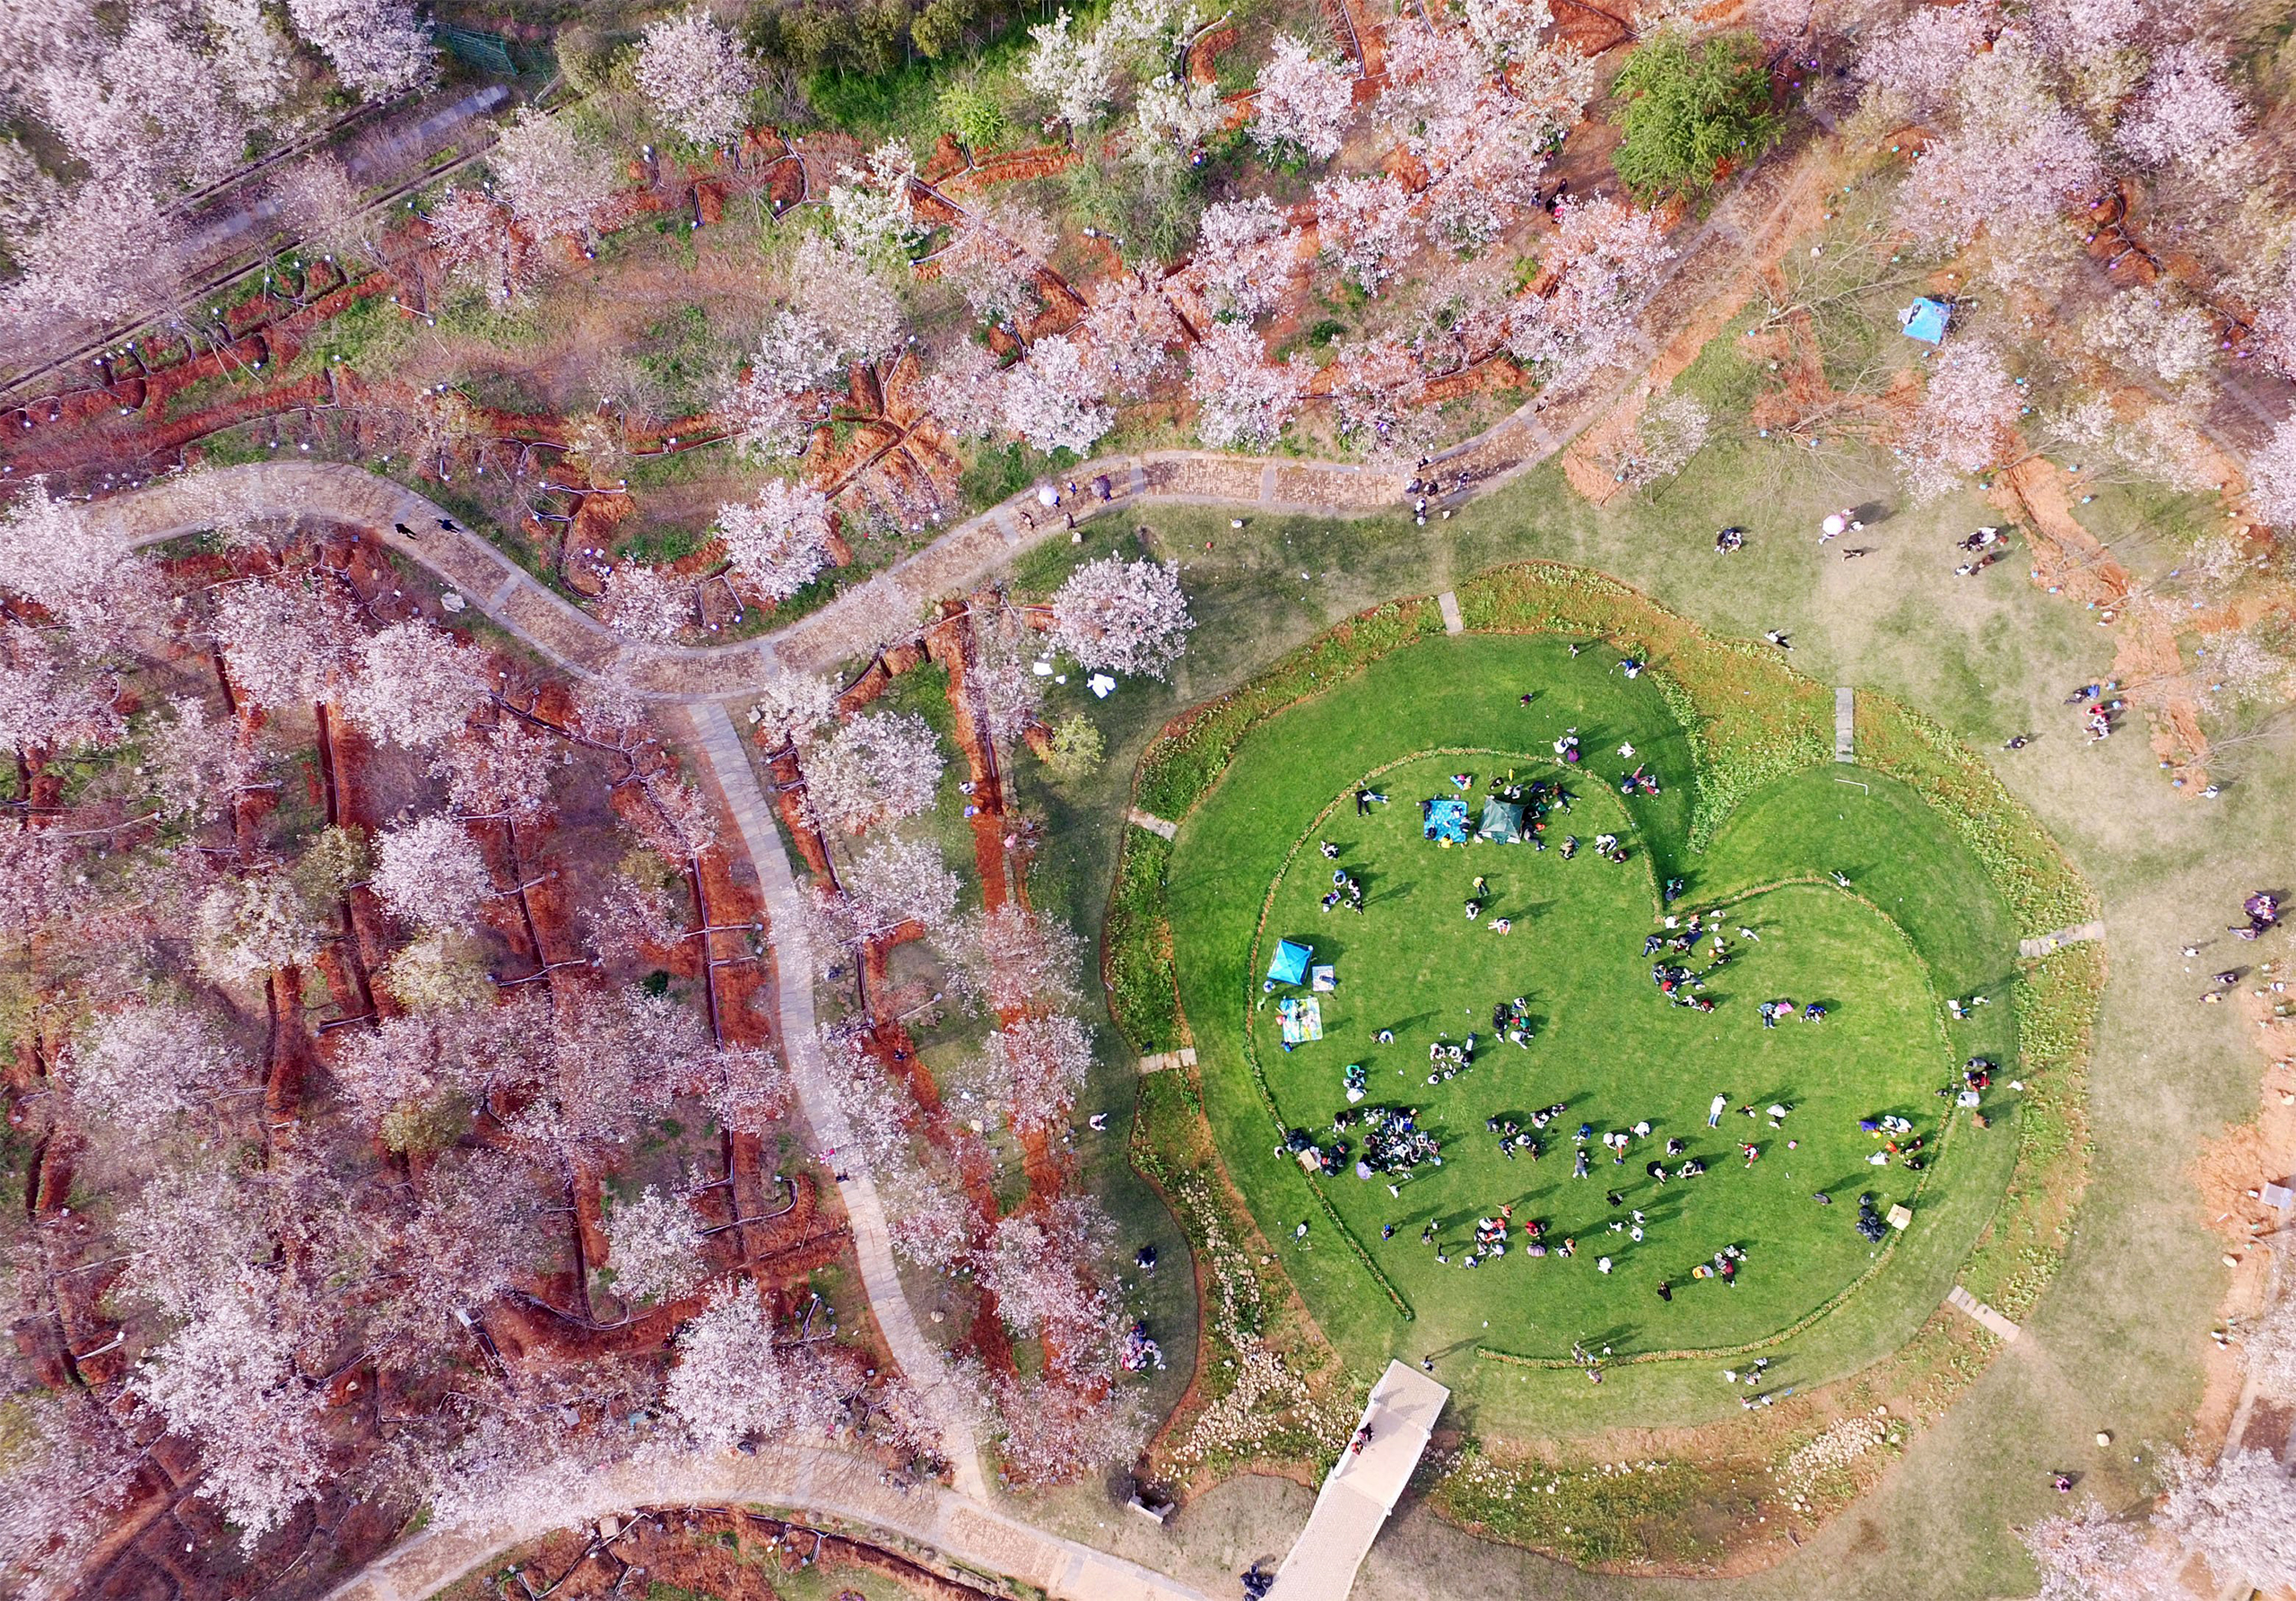 An aerial photo taken on March 26, 2017 shows a heart-shaped rest area surrounded by cherry blossoms in Fenghuanggou Scenic Spot of Nanchang County, east China's Jiangxi Province.